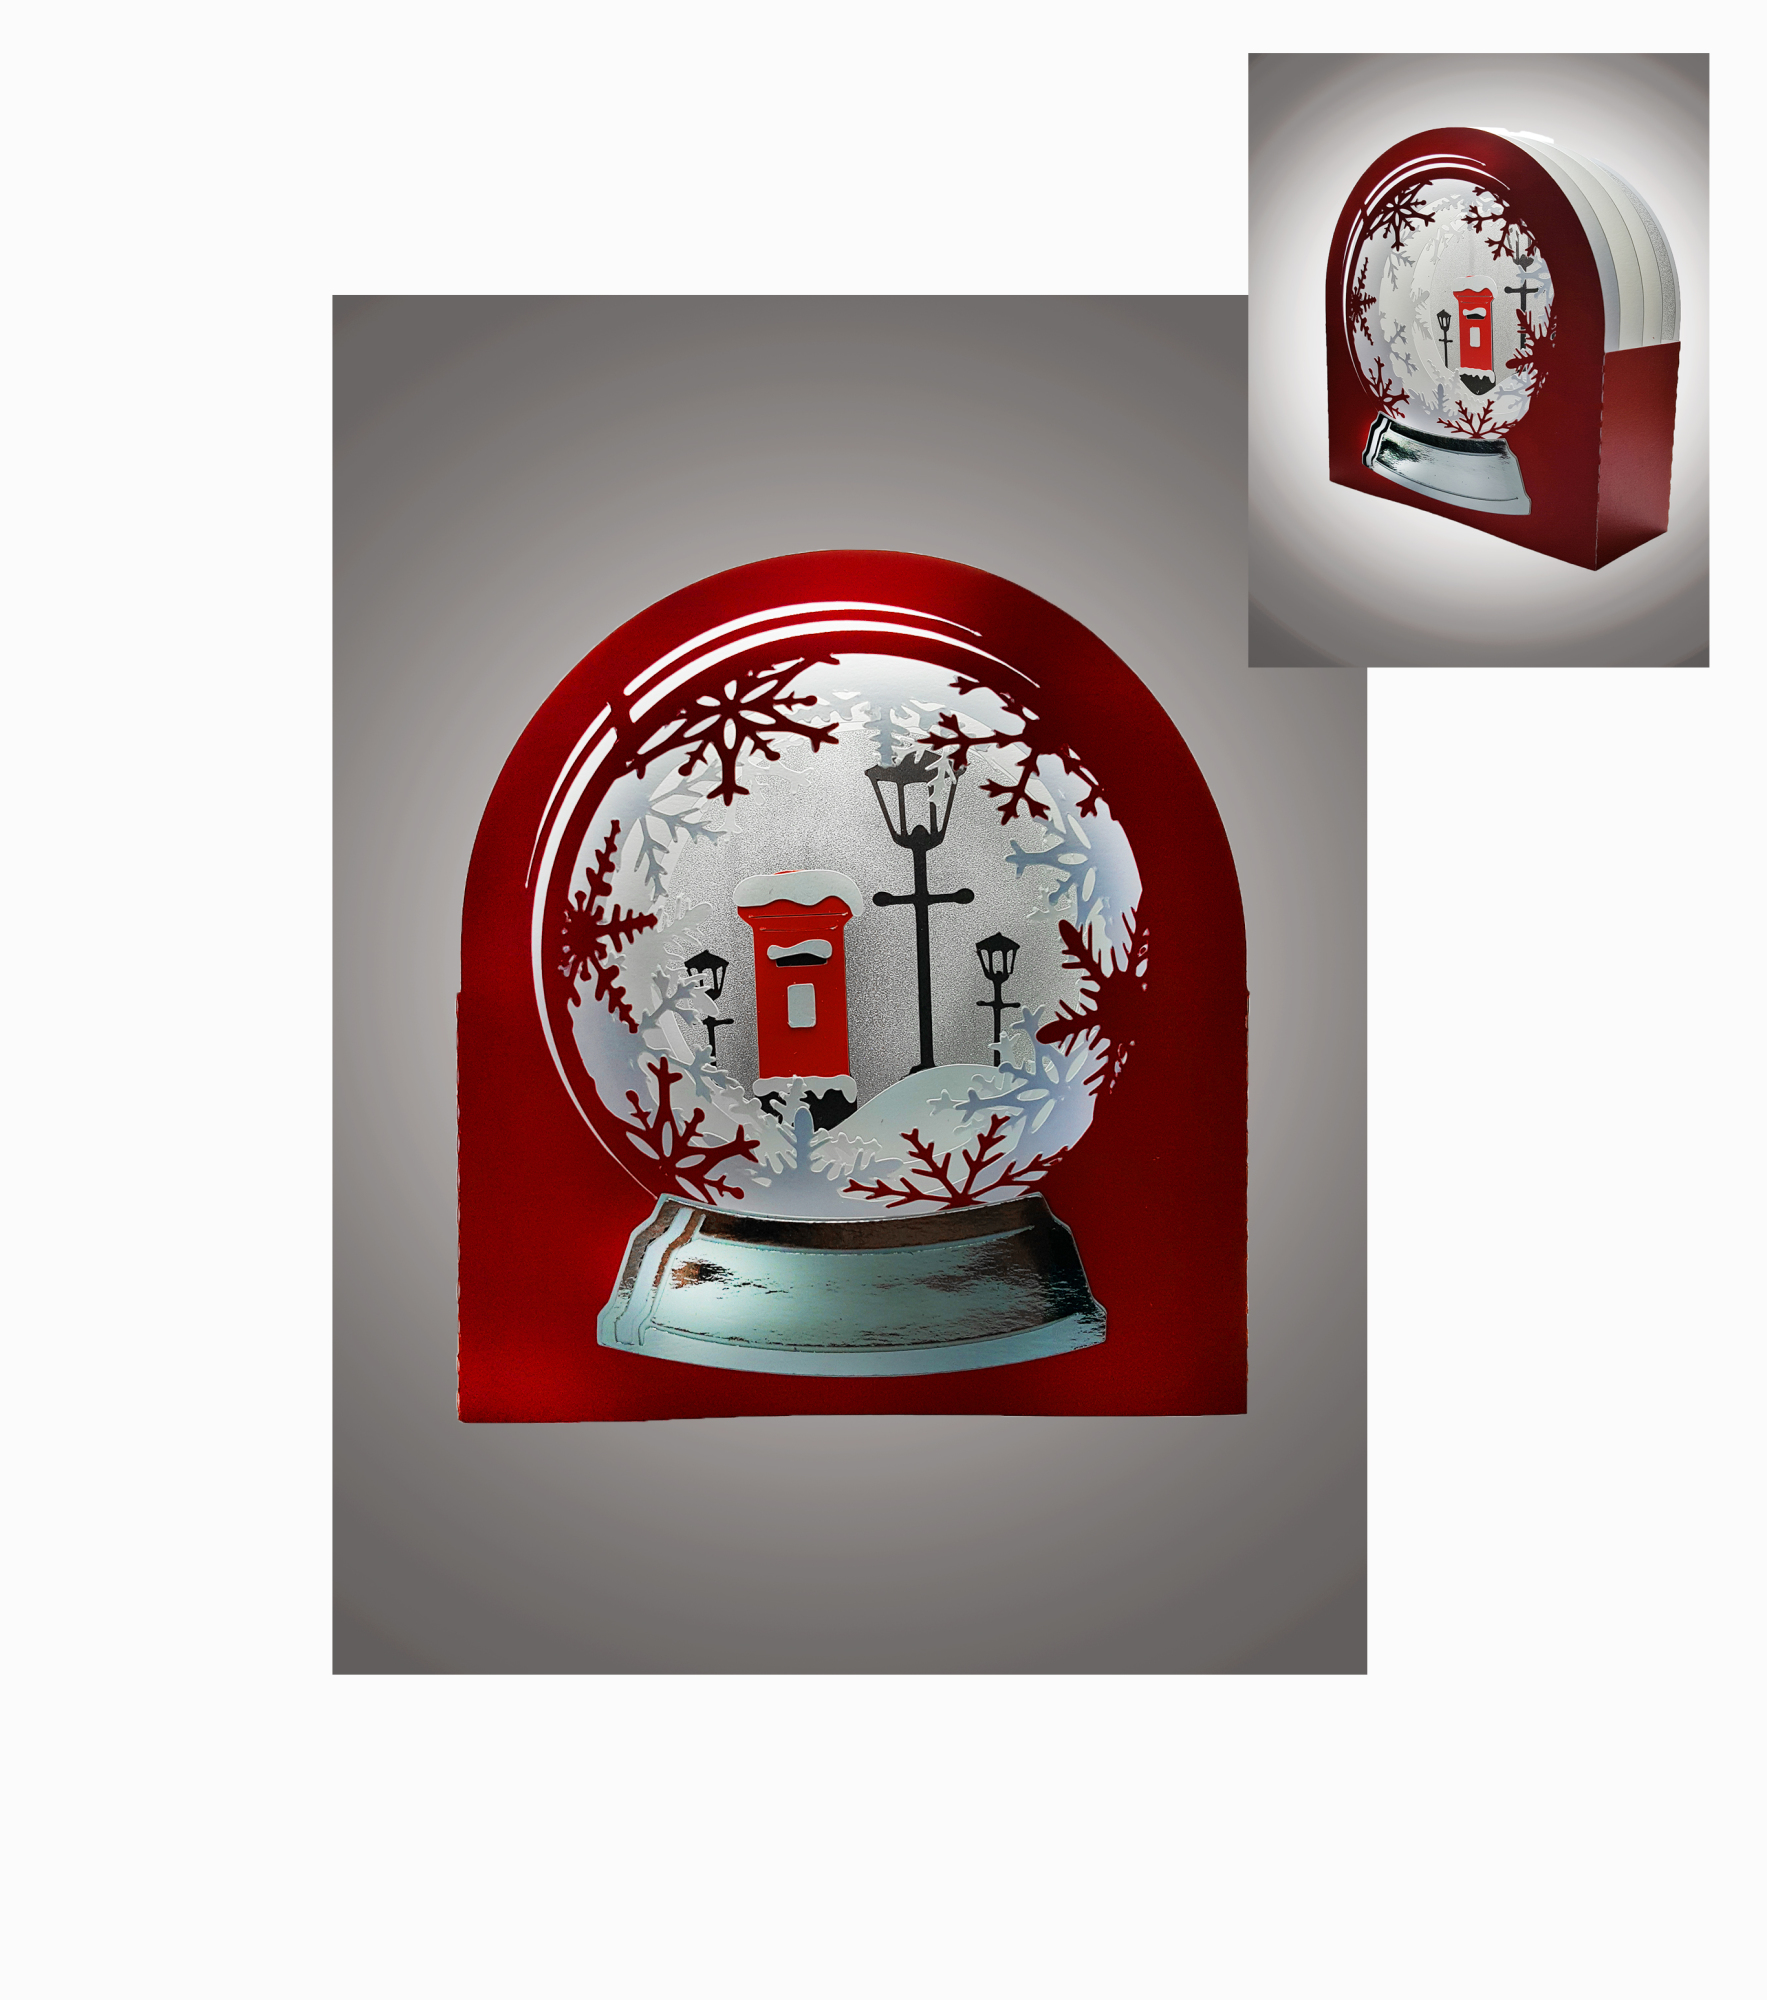 3D Snow Globe Classic Red Letter Box greetings card example image 1